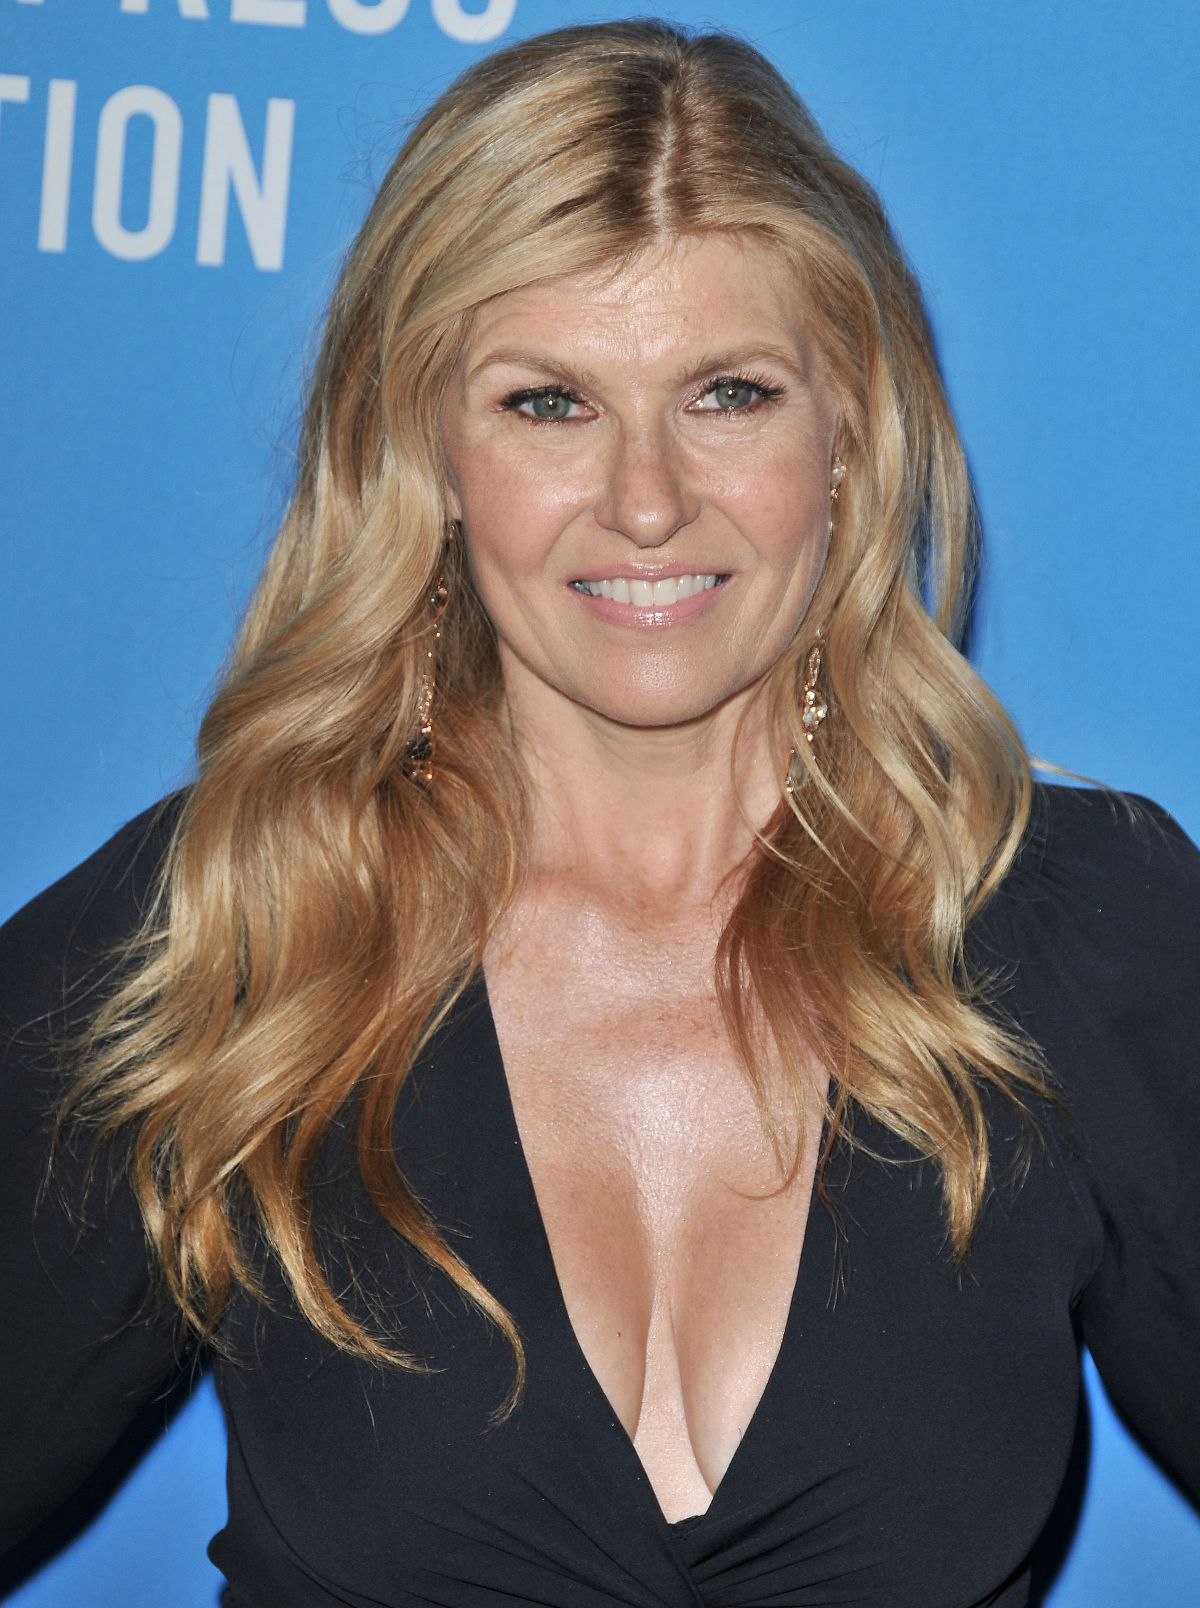 connie britton at hfpa annual grants banquet in beverly hills 08 09 2018 12 10 Pairs Of Celebrities Who Used To Be Roommates